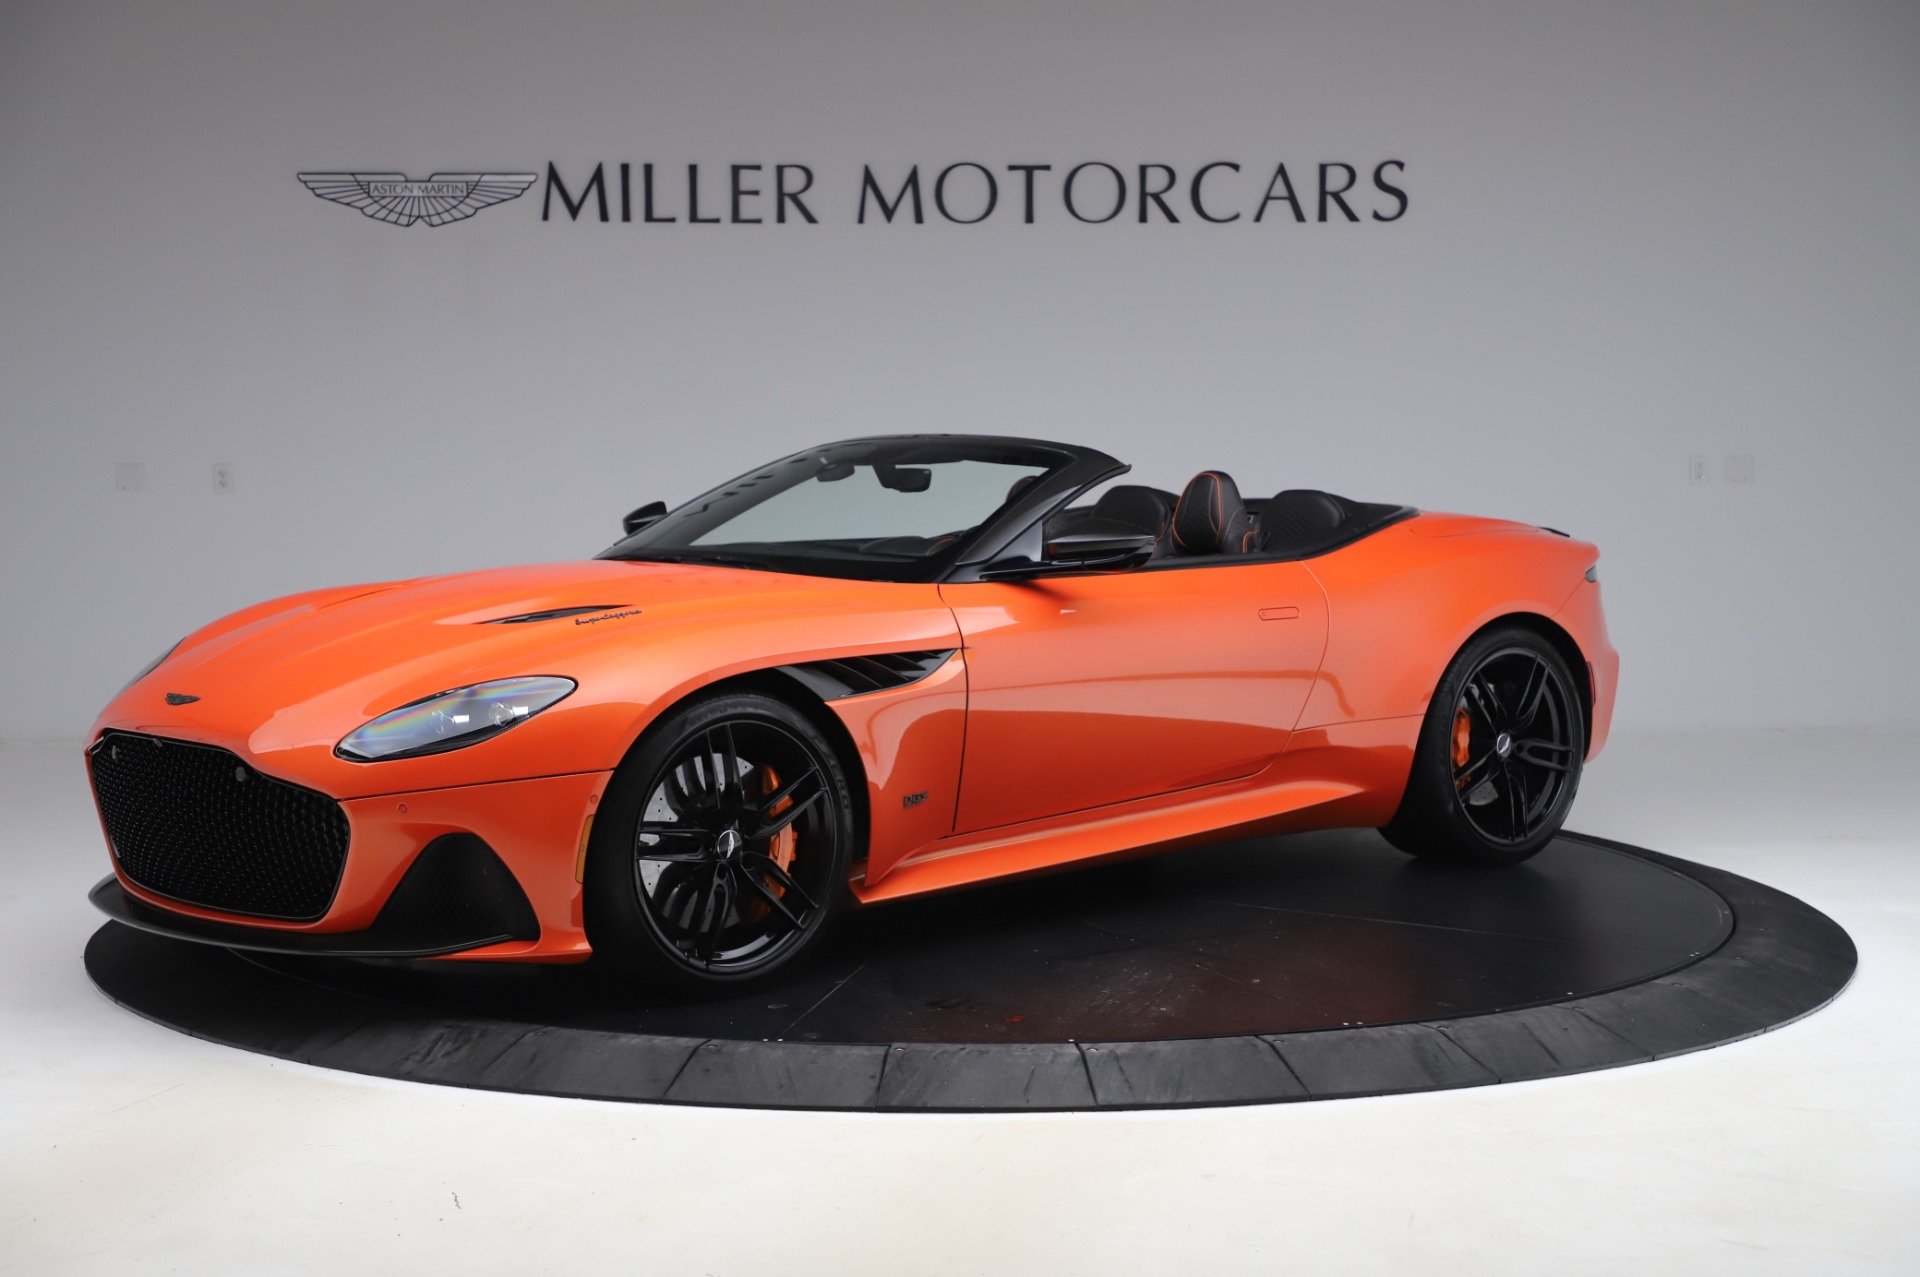 Used 2020 Aston Martin DBS Superleggera Volante for sale $339,800 at Maserati of Greenwich in Greenwich CT 06830 1